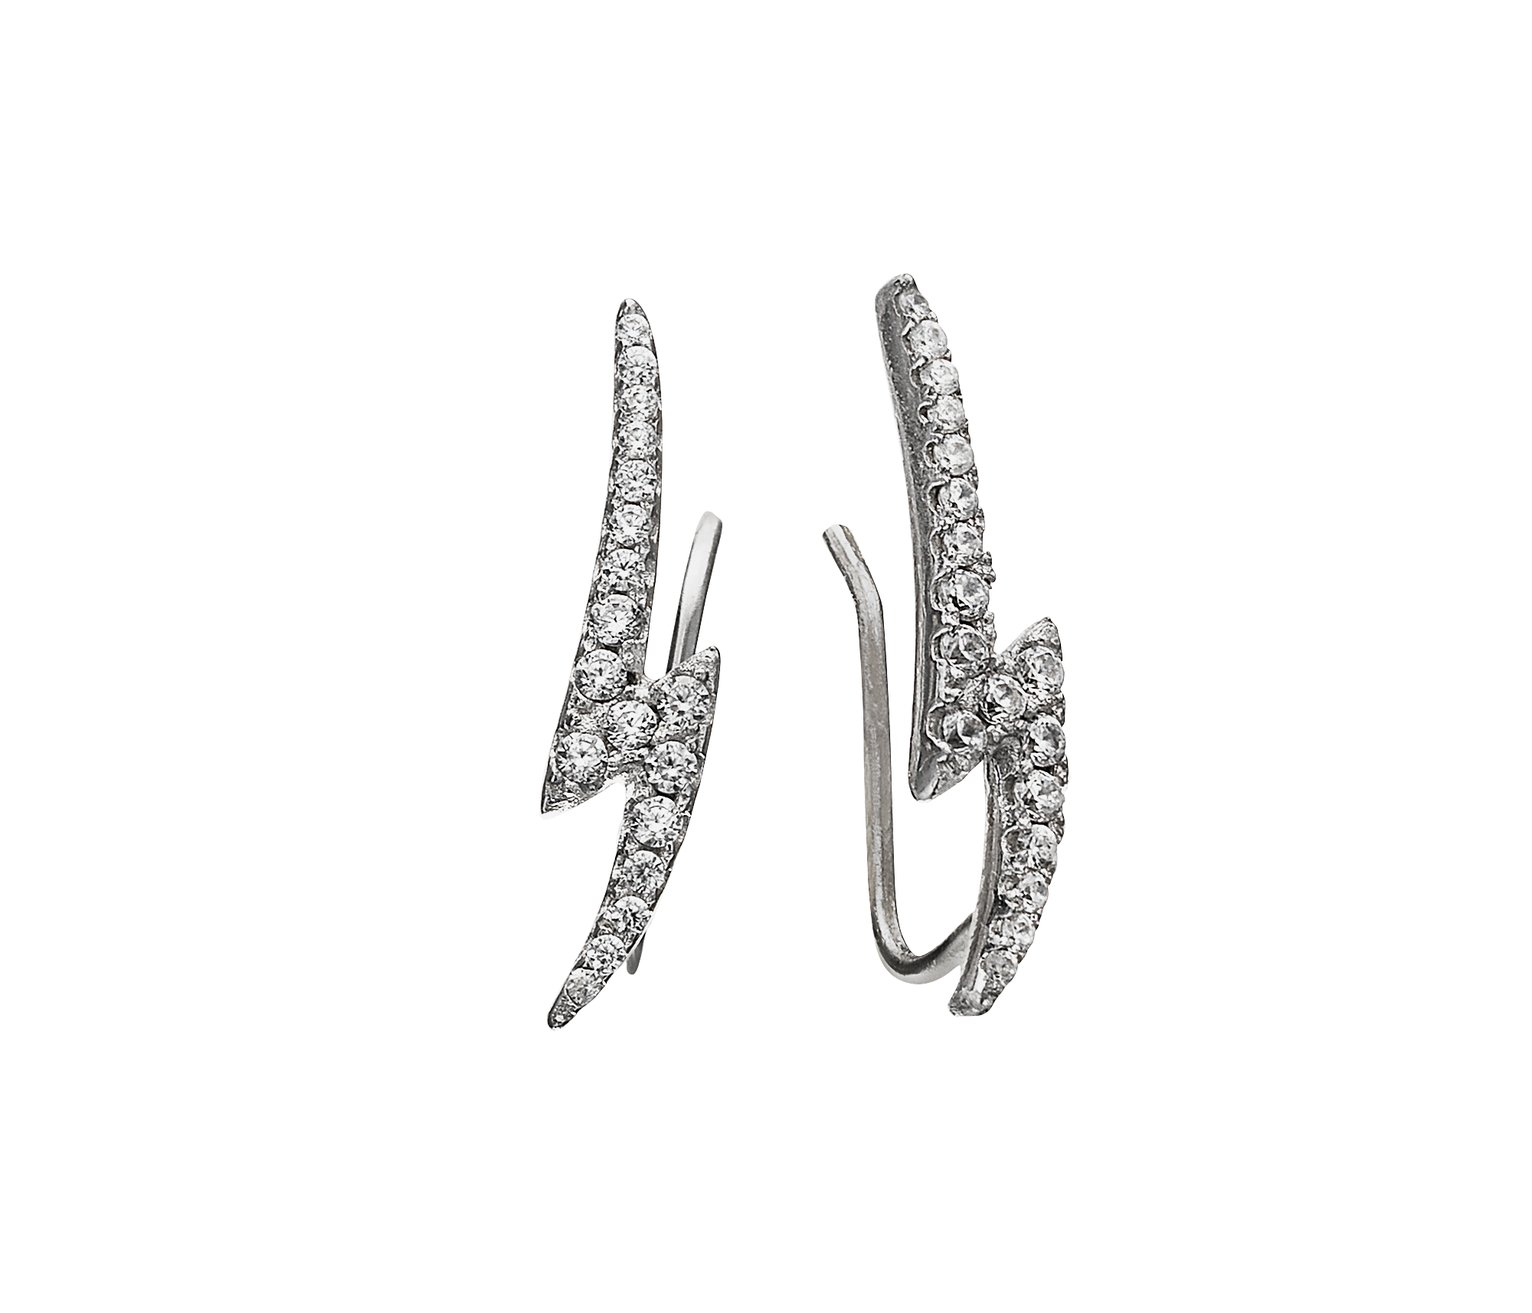 State of Mine Sterling Silver Bolt Climber Earrings review